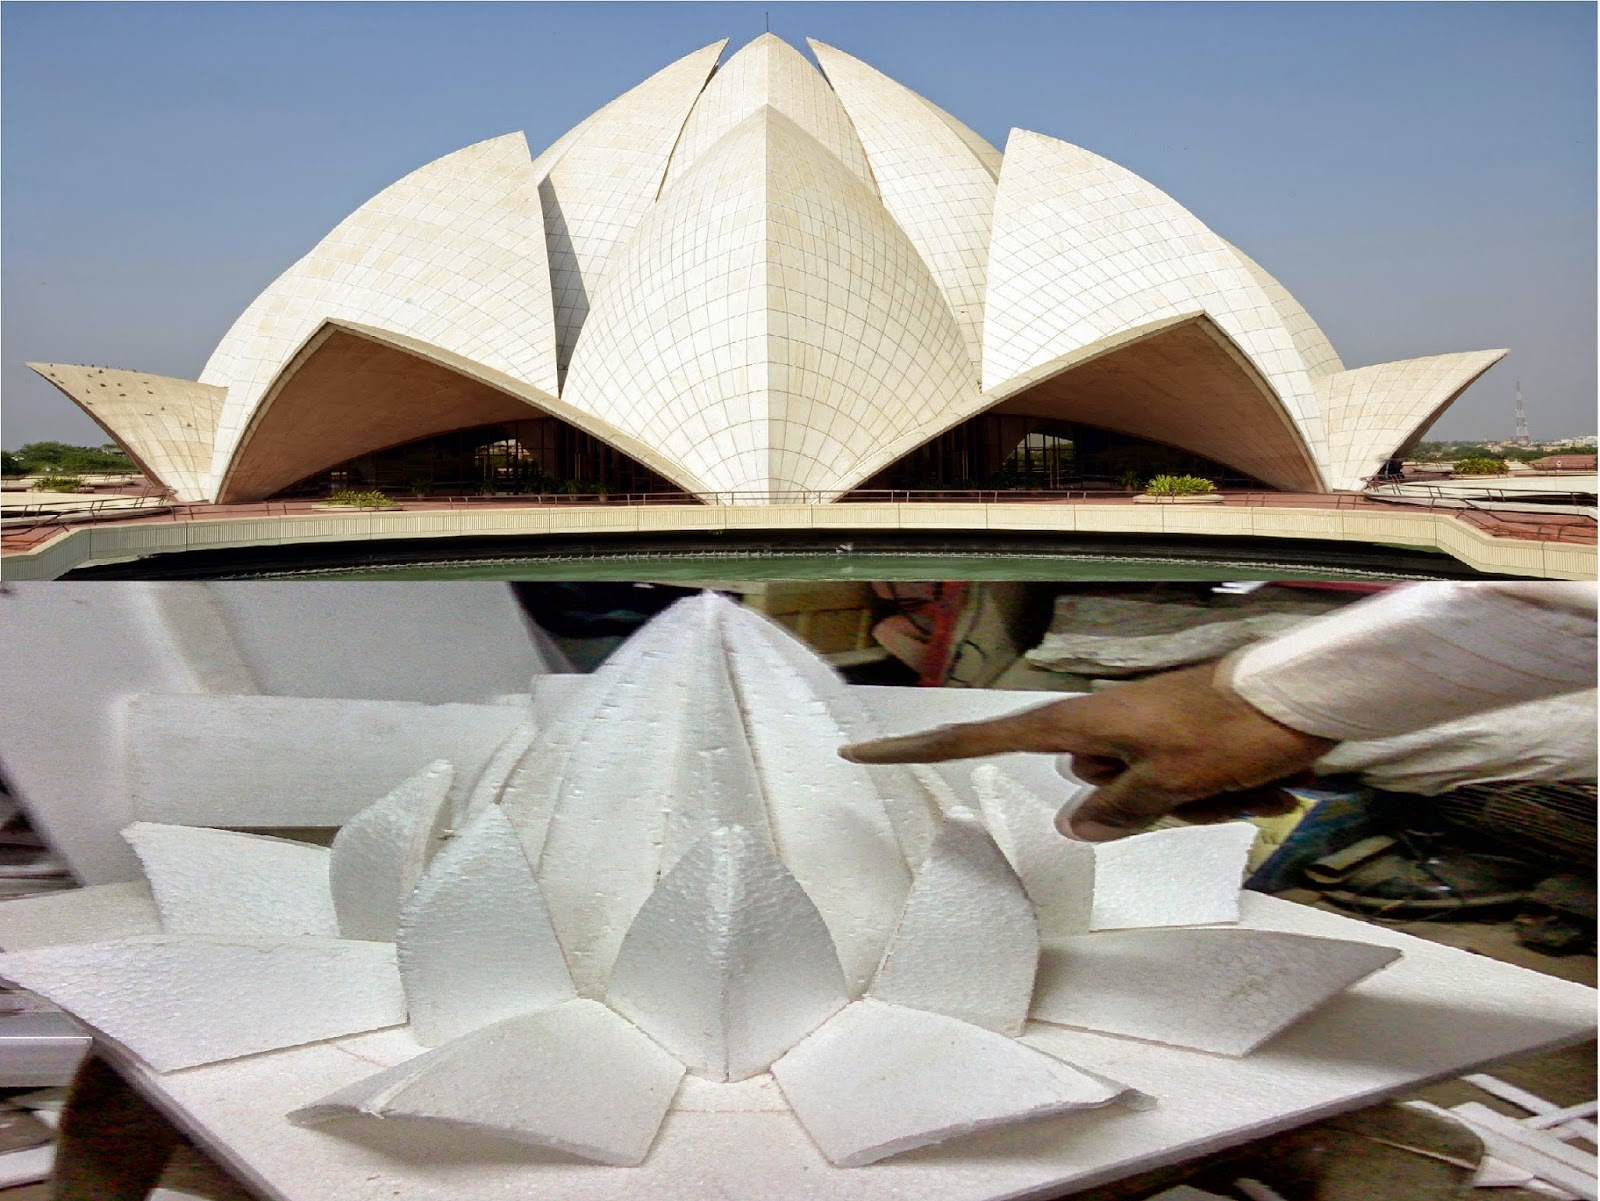 Hand Made Model of Delhi Lotus Temple image, picture, photos